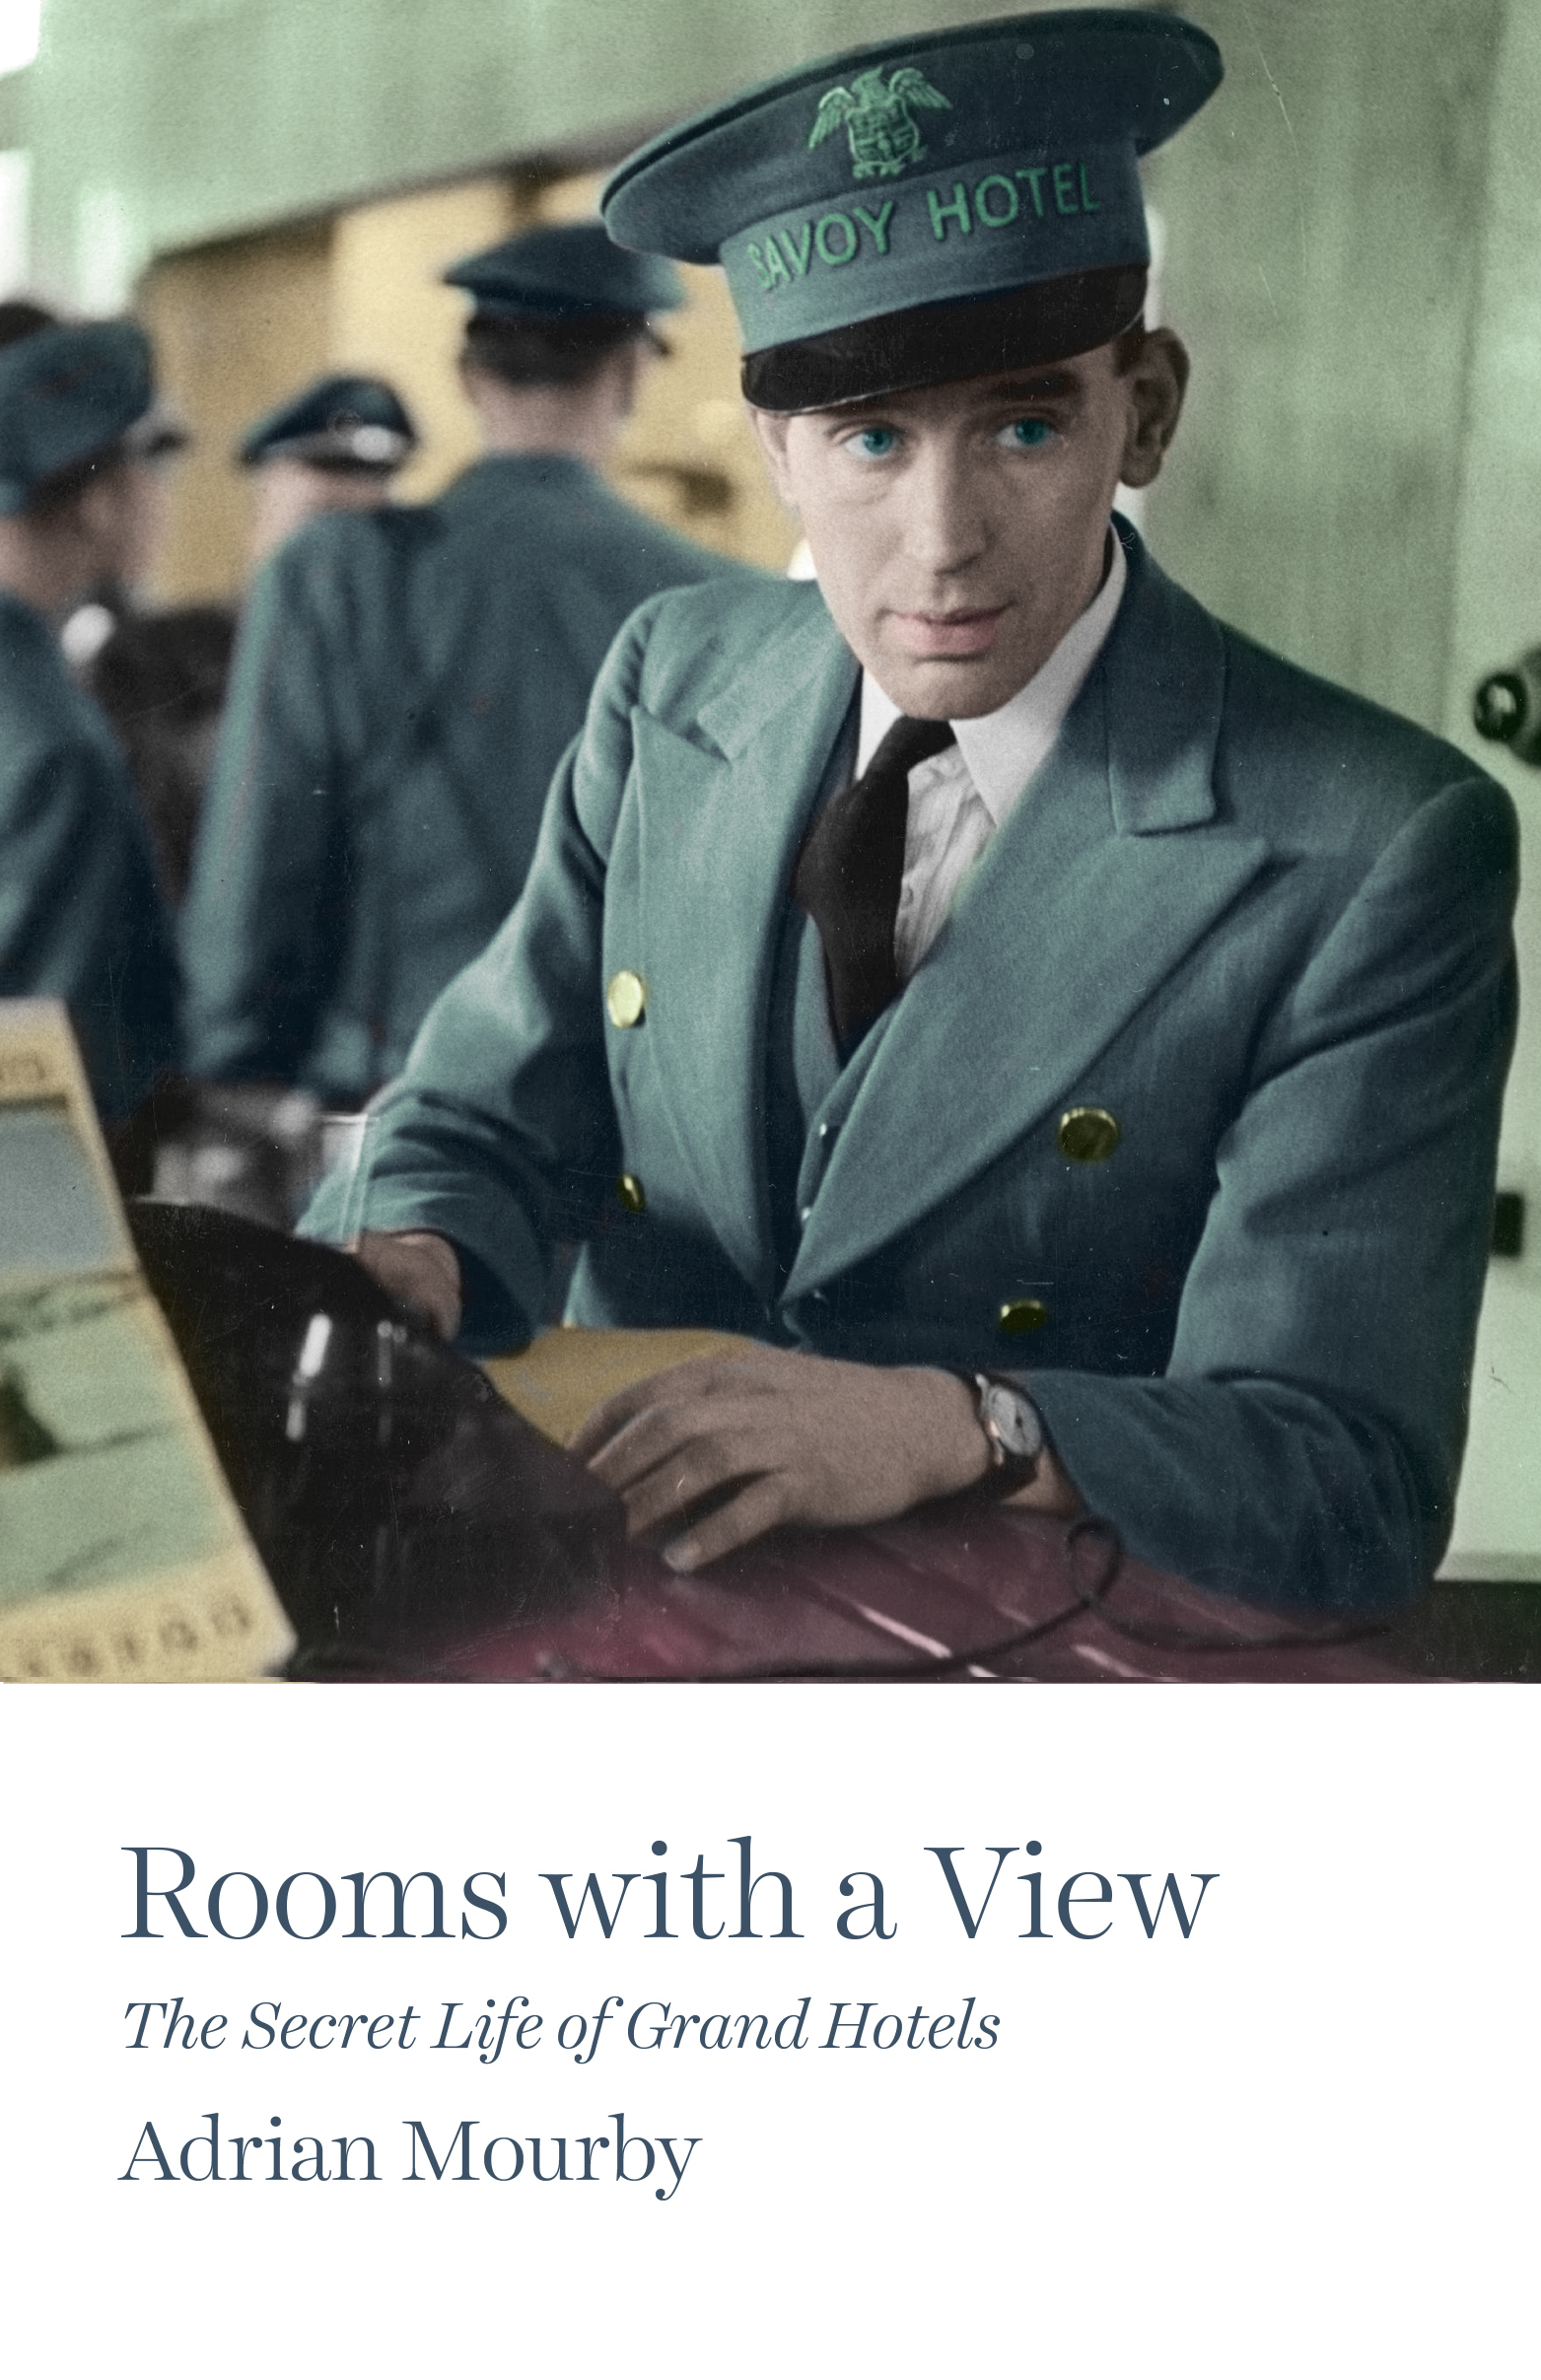 Rooms with a View: The Secret Life of Great Hotels